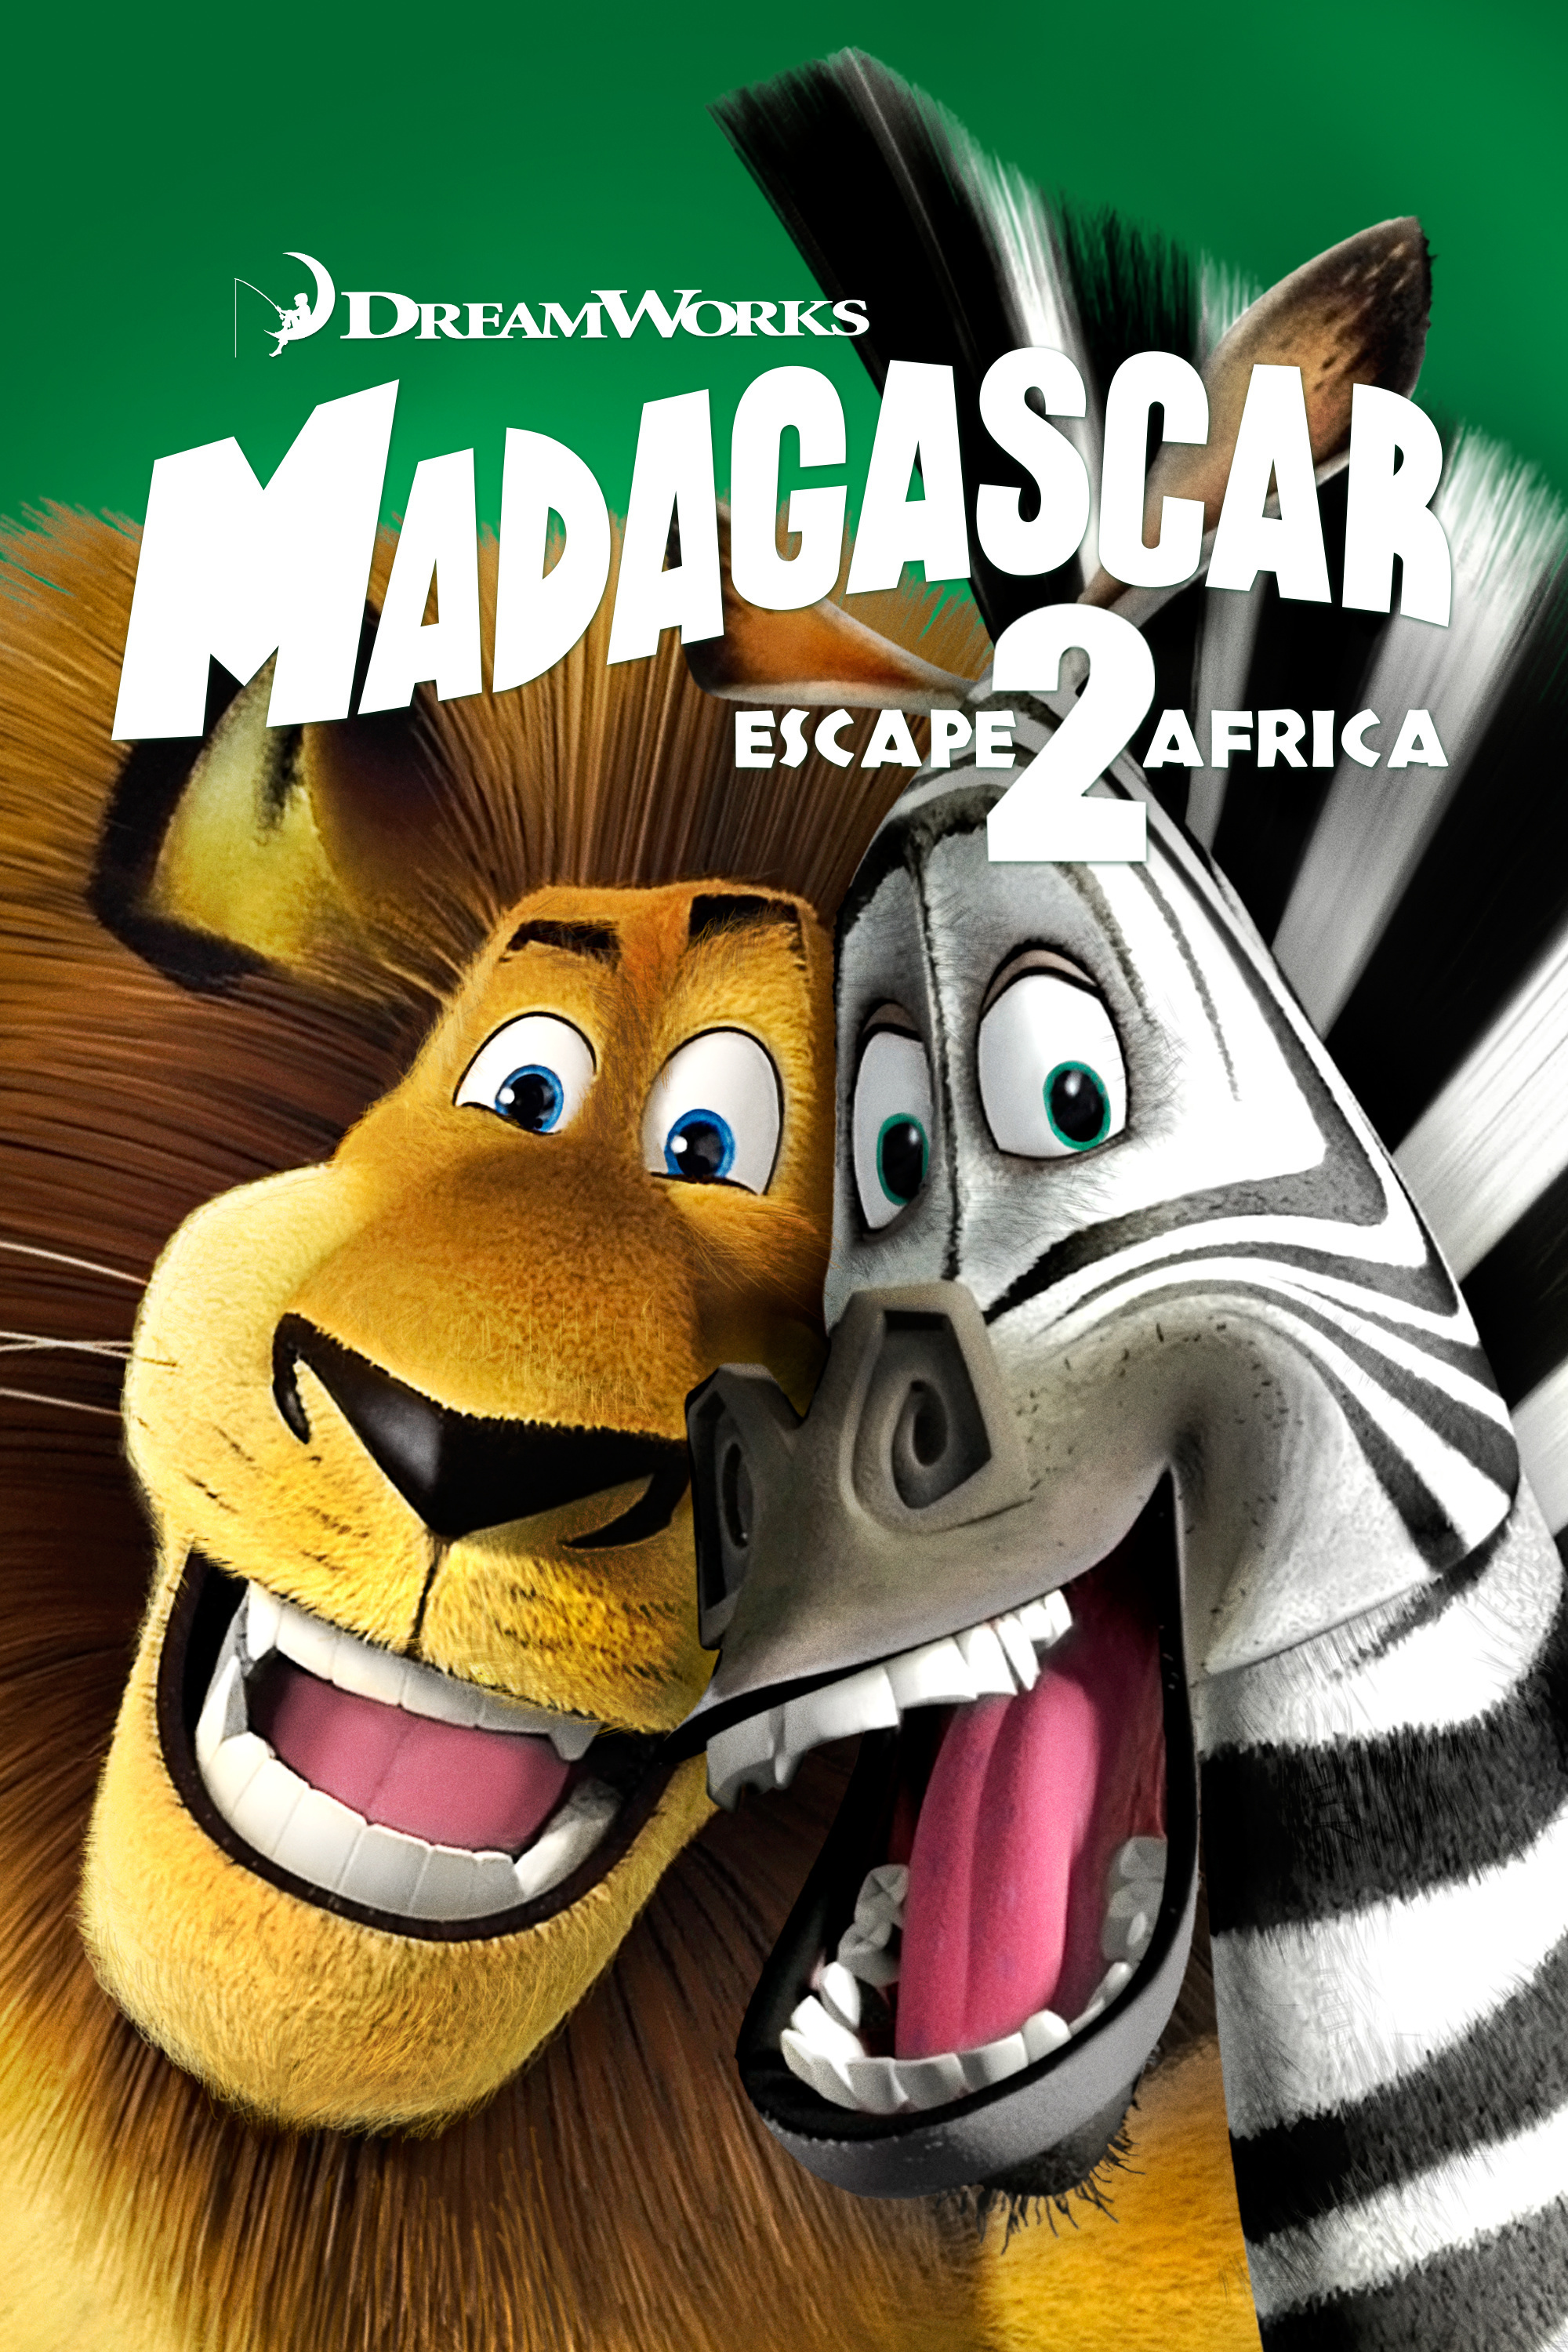 image dreamworks madagascar escape 2 africa itunes